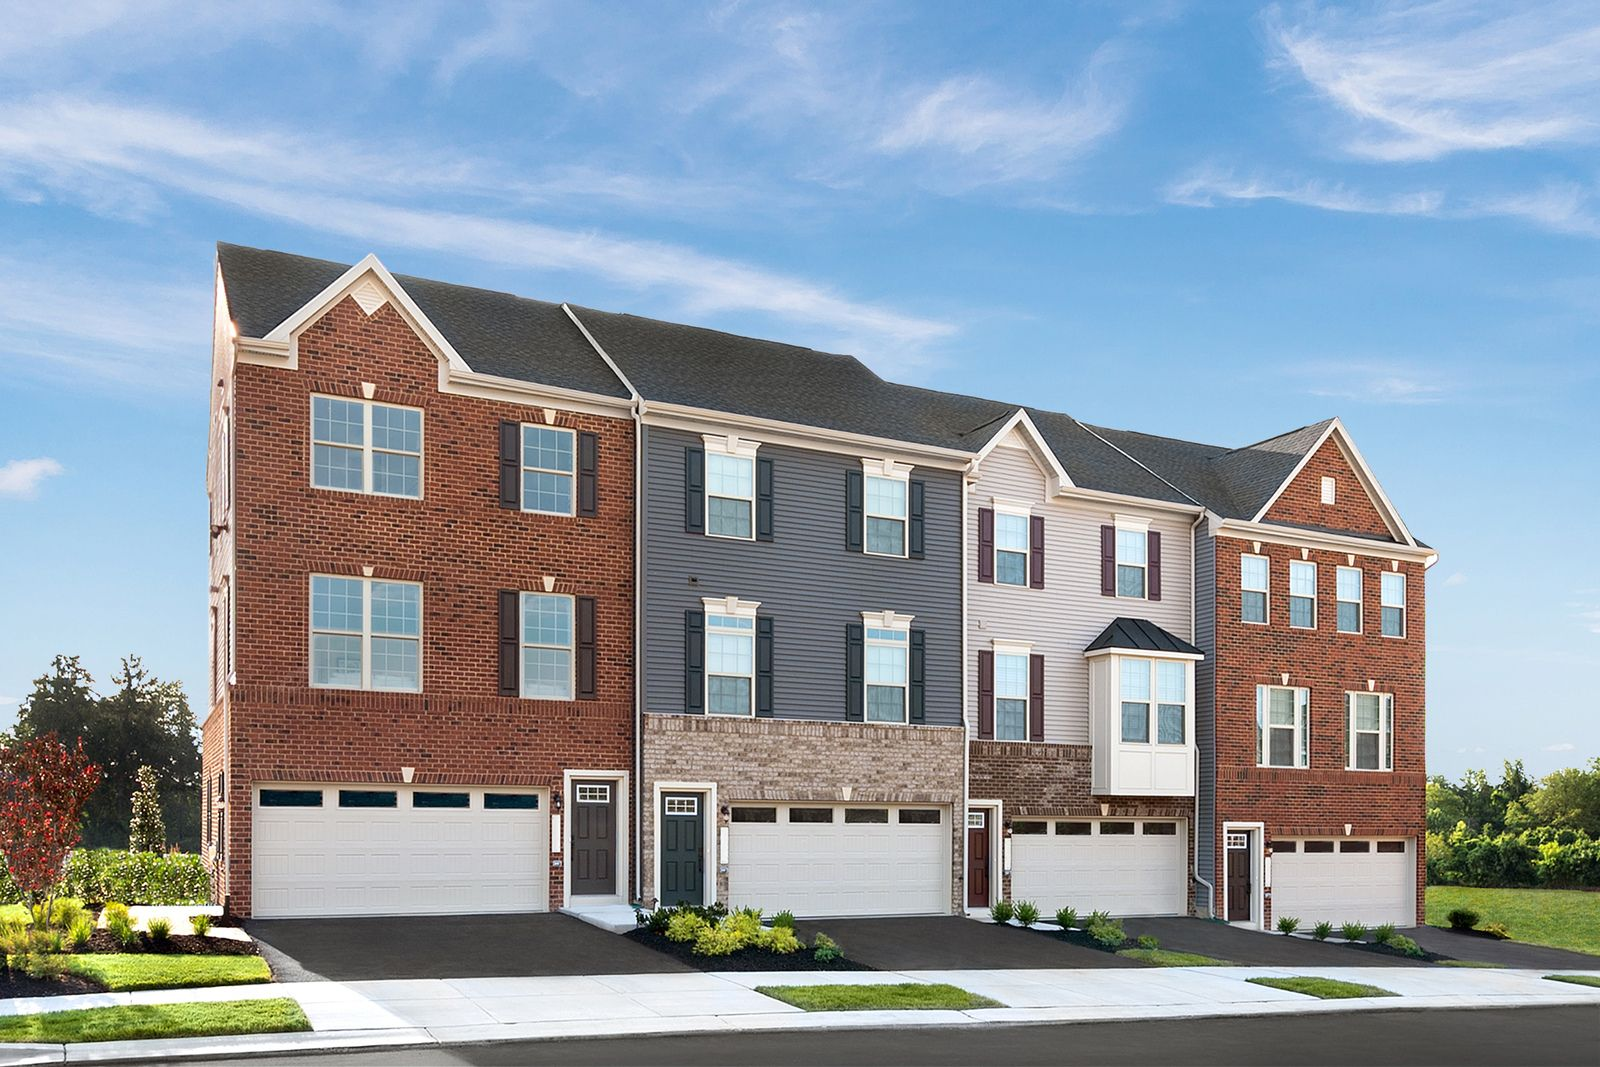 WELCOME TO ARMSTRONG VILLAGE IN UPPER MARLBORO, MD:Garage townhomes with the convenient location you want right off MD-4/Penn Ave. starting from the low $400s.Schedule an appointment today!